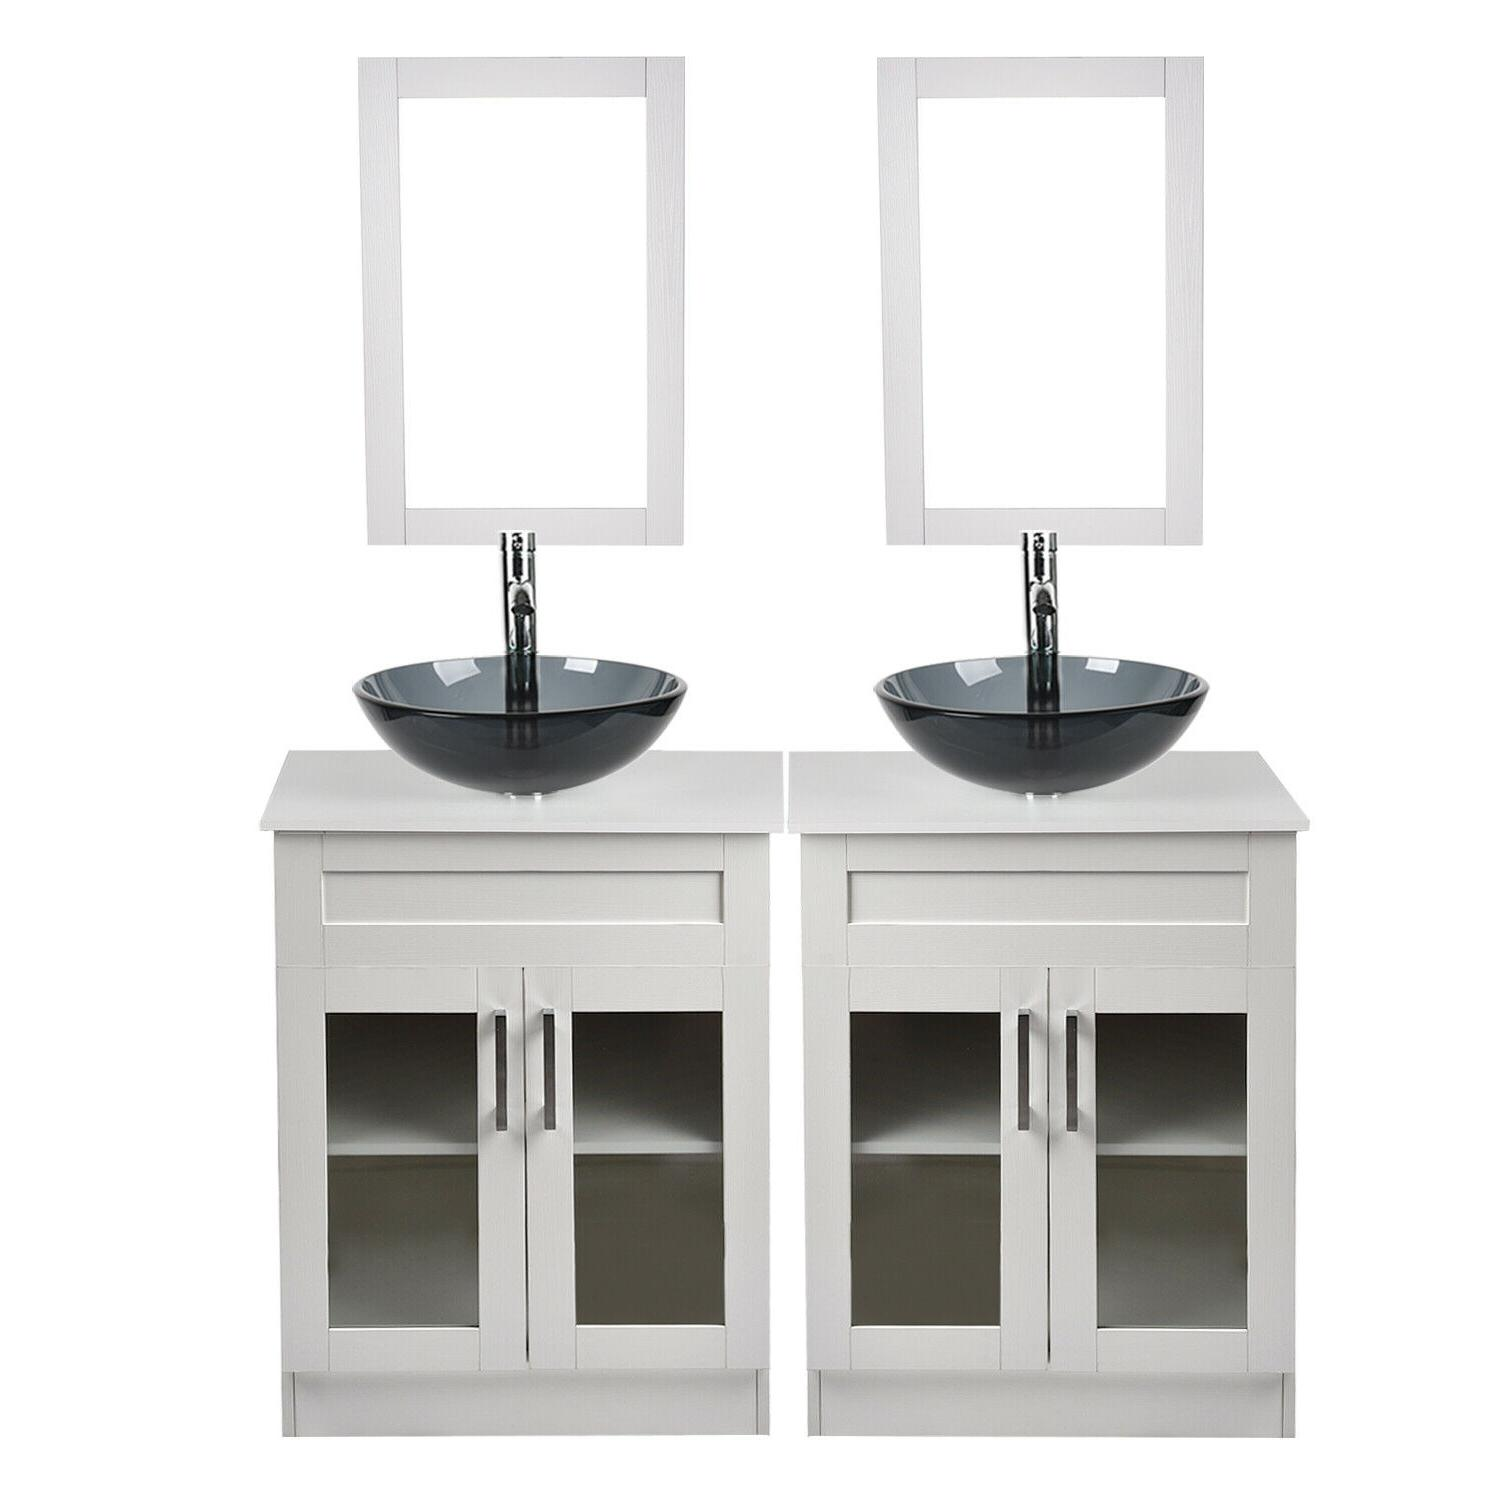 Bathroom Single Vanity Bowl Faucet Drain Combo